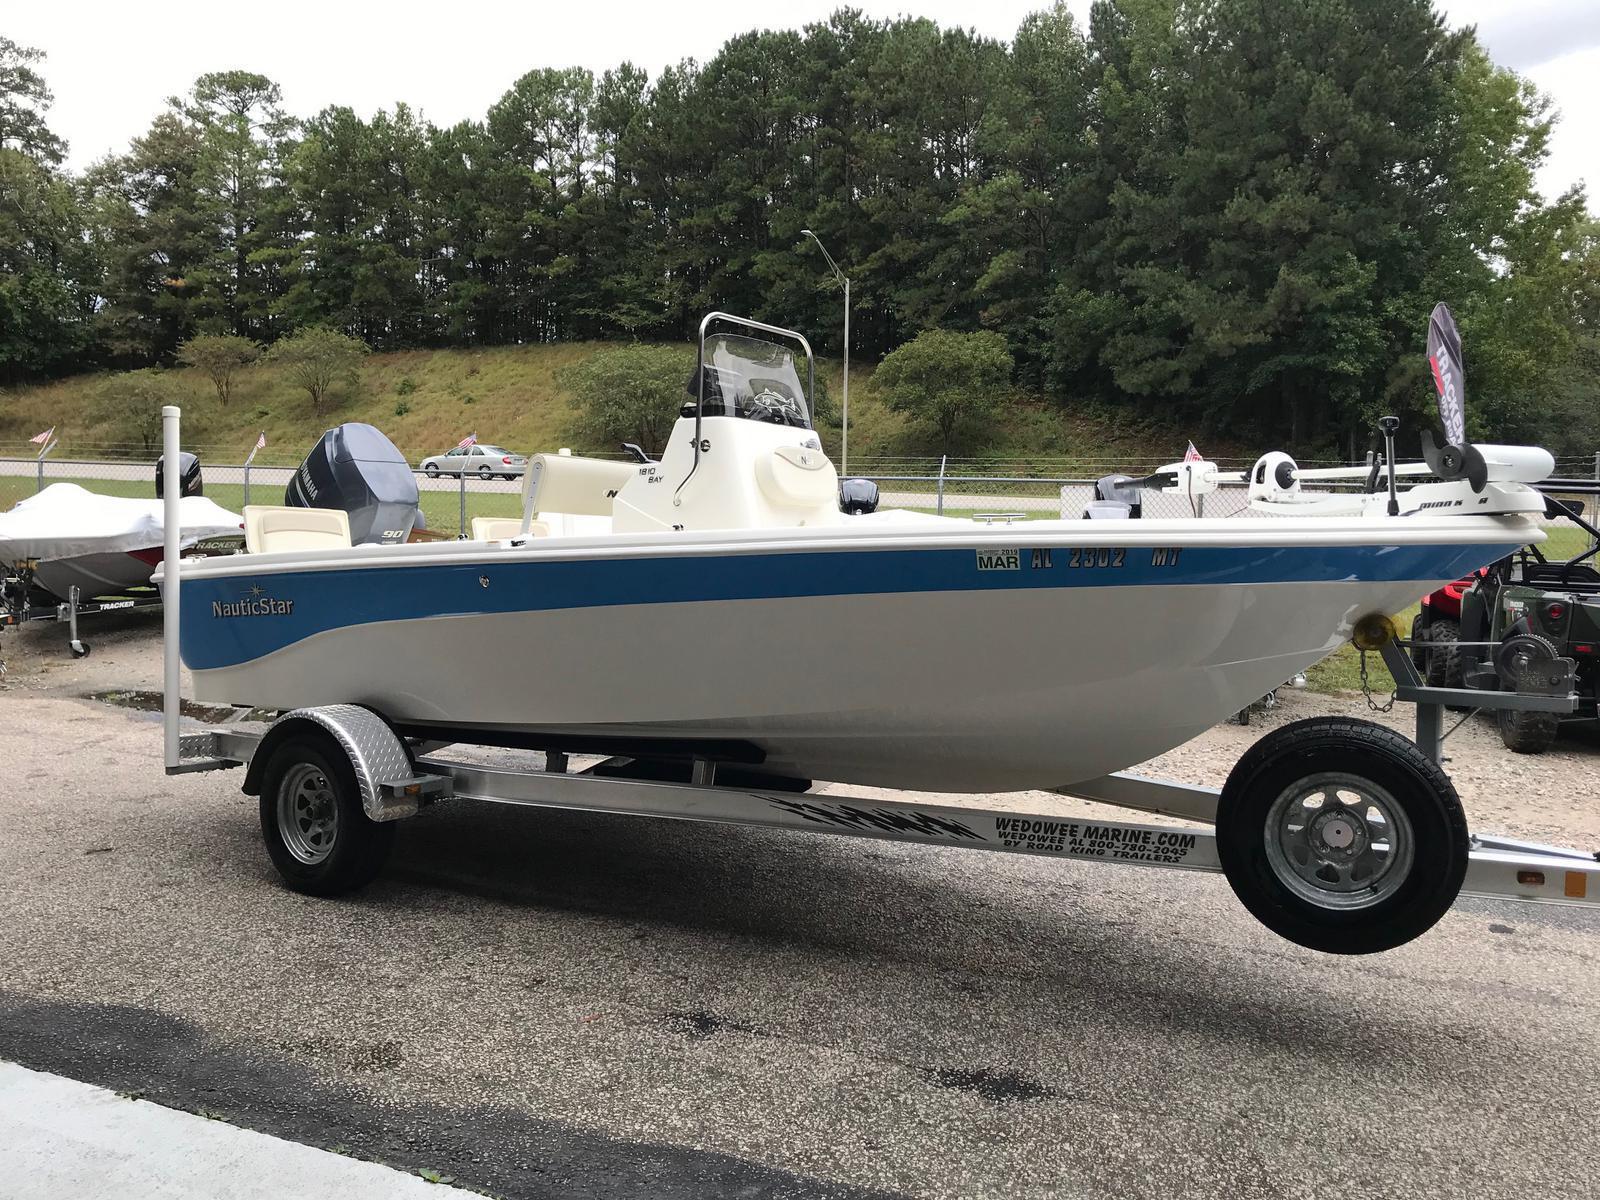 2015 Nautic Star boat for sale, model of the boat is 1810 & Image # 4 of 8